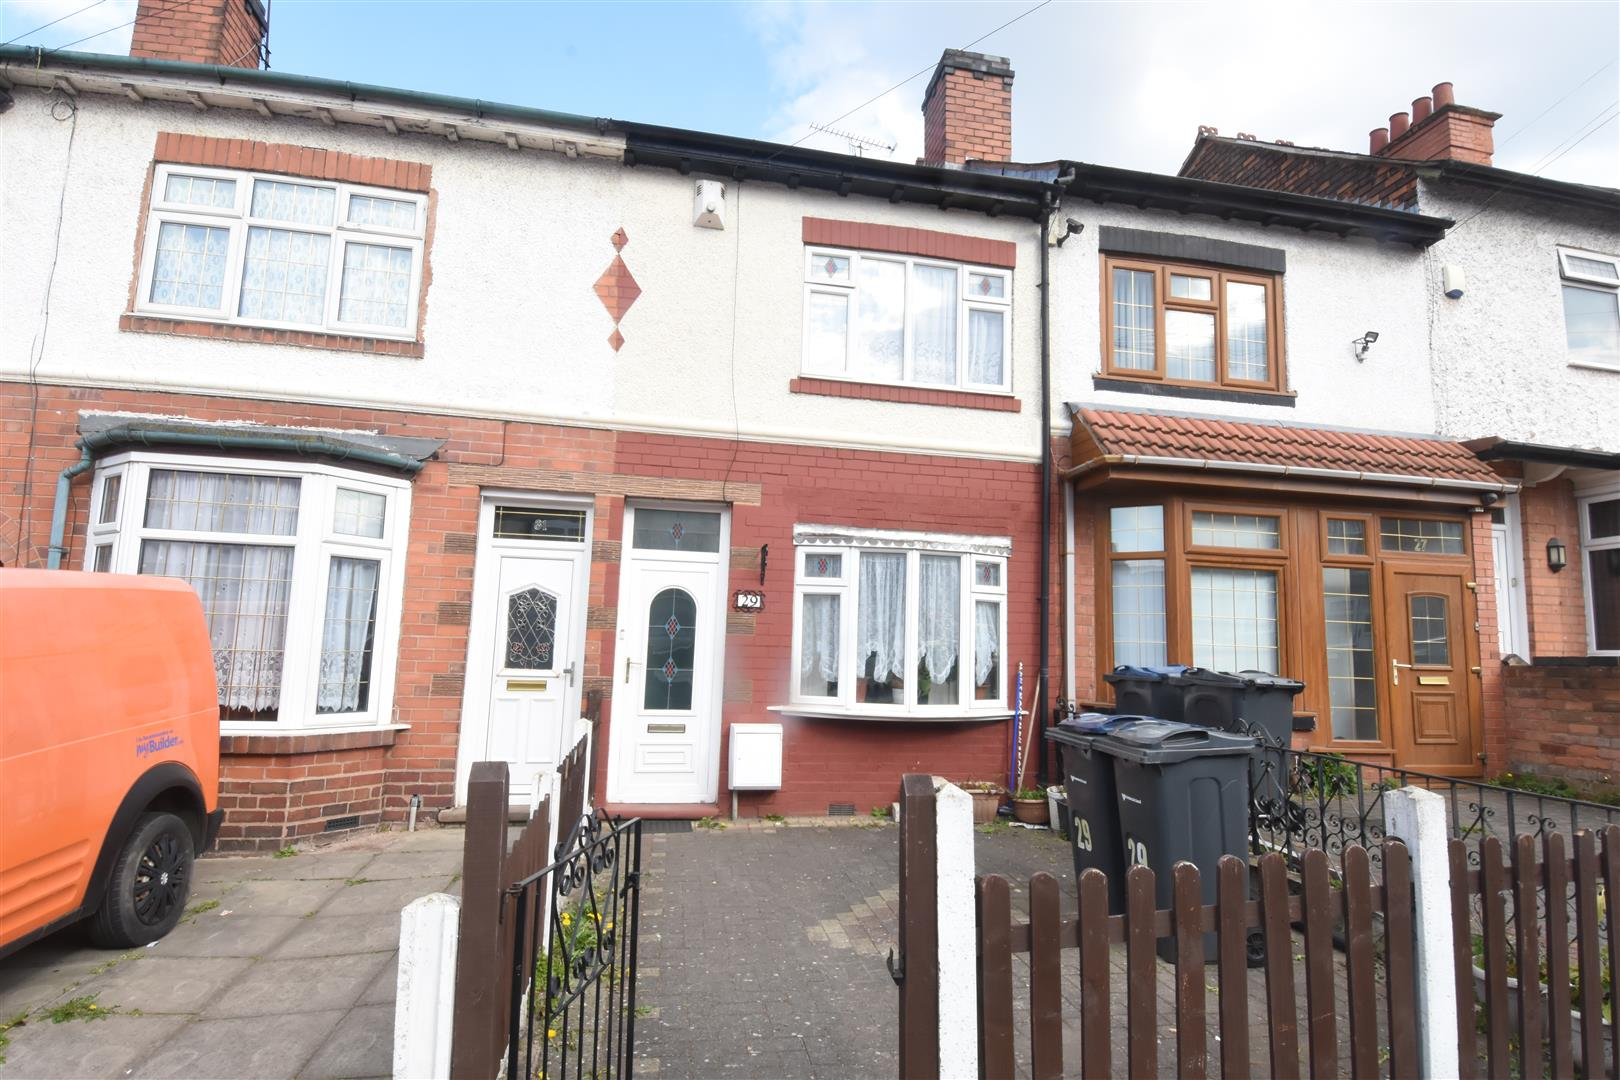 3 bed house for sale in William Cook Road, Ward End, BIRMINGHAM - Property Image 1